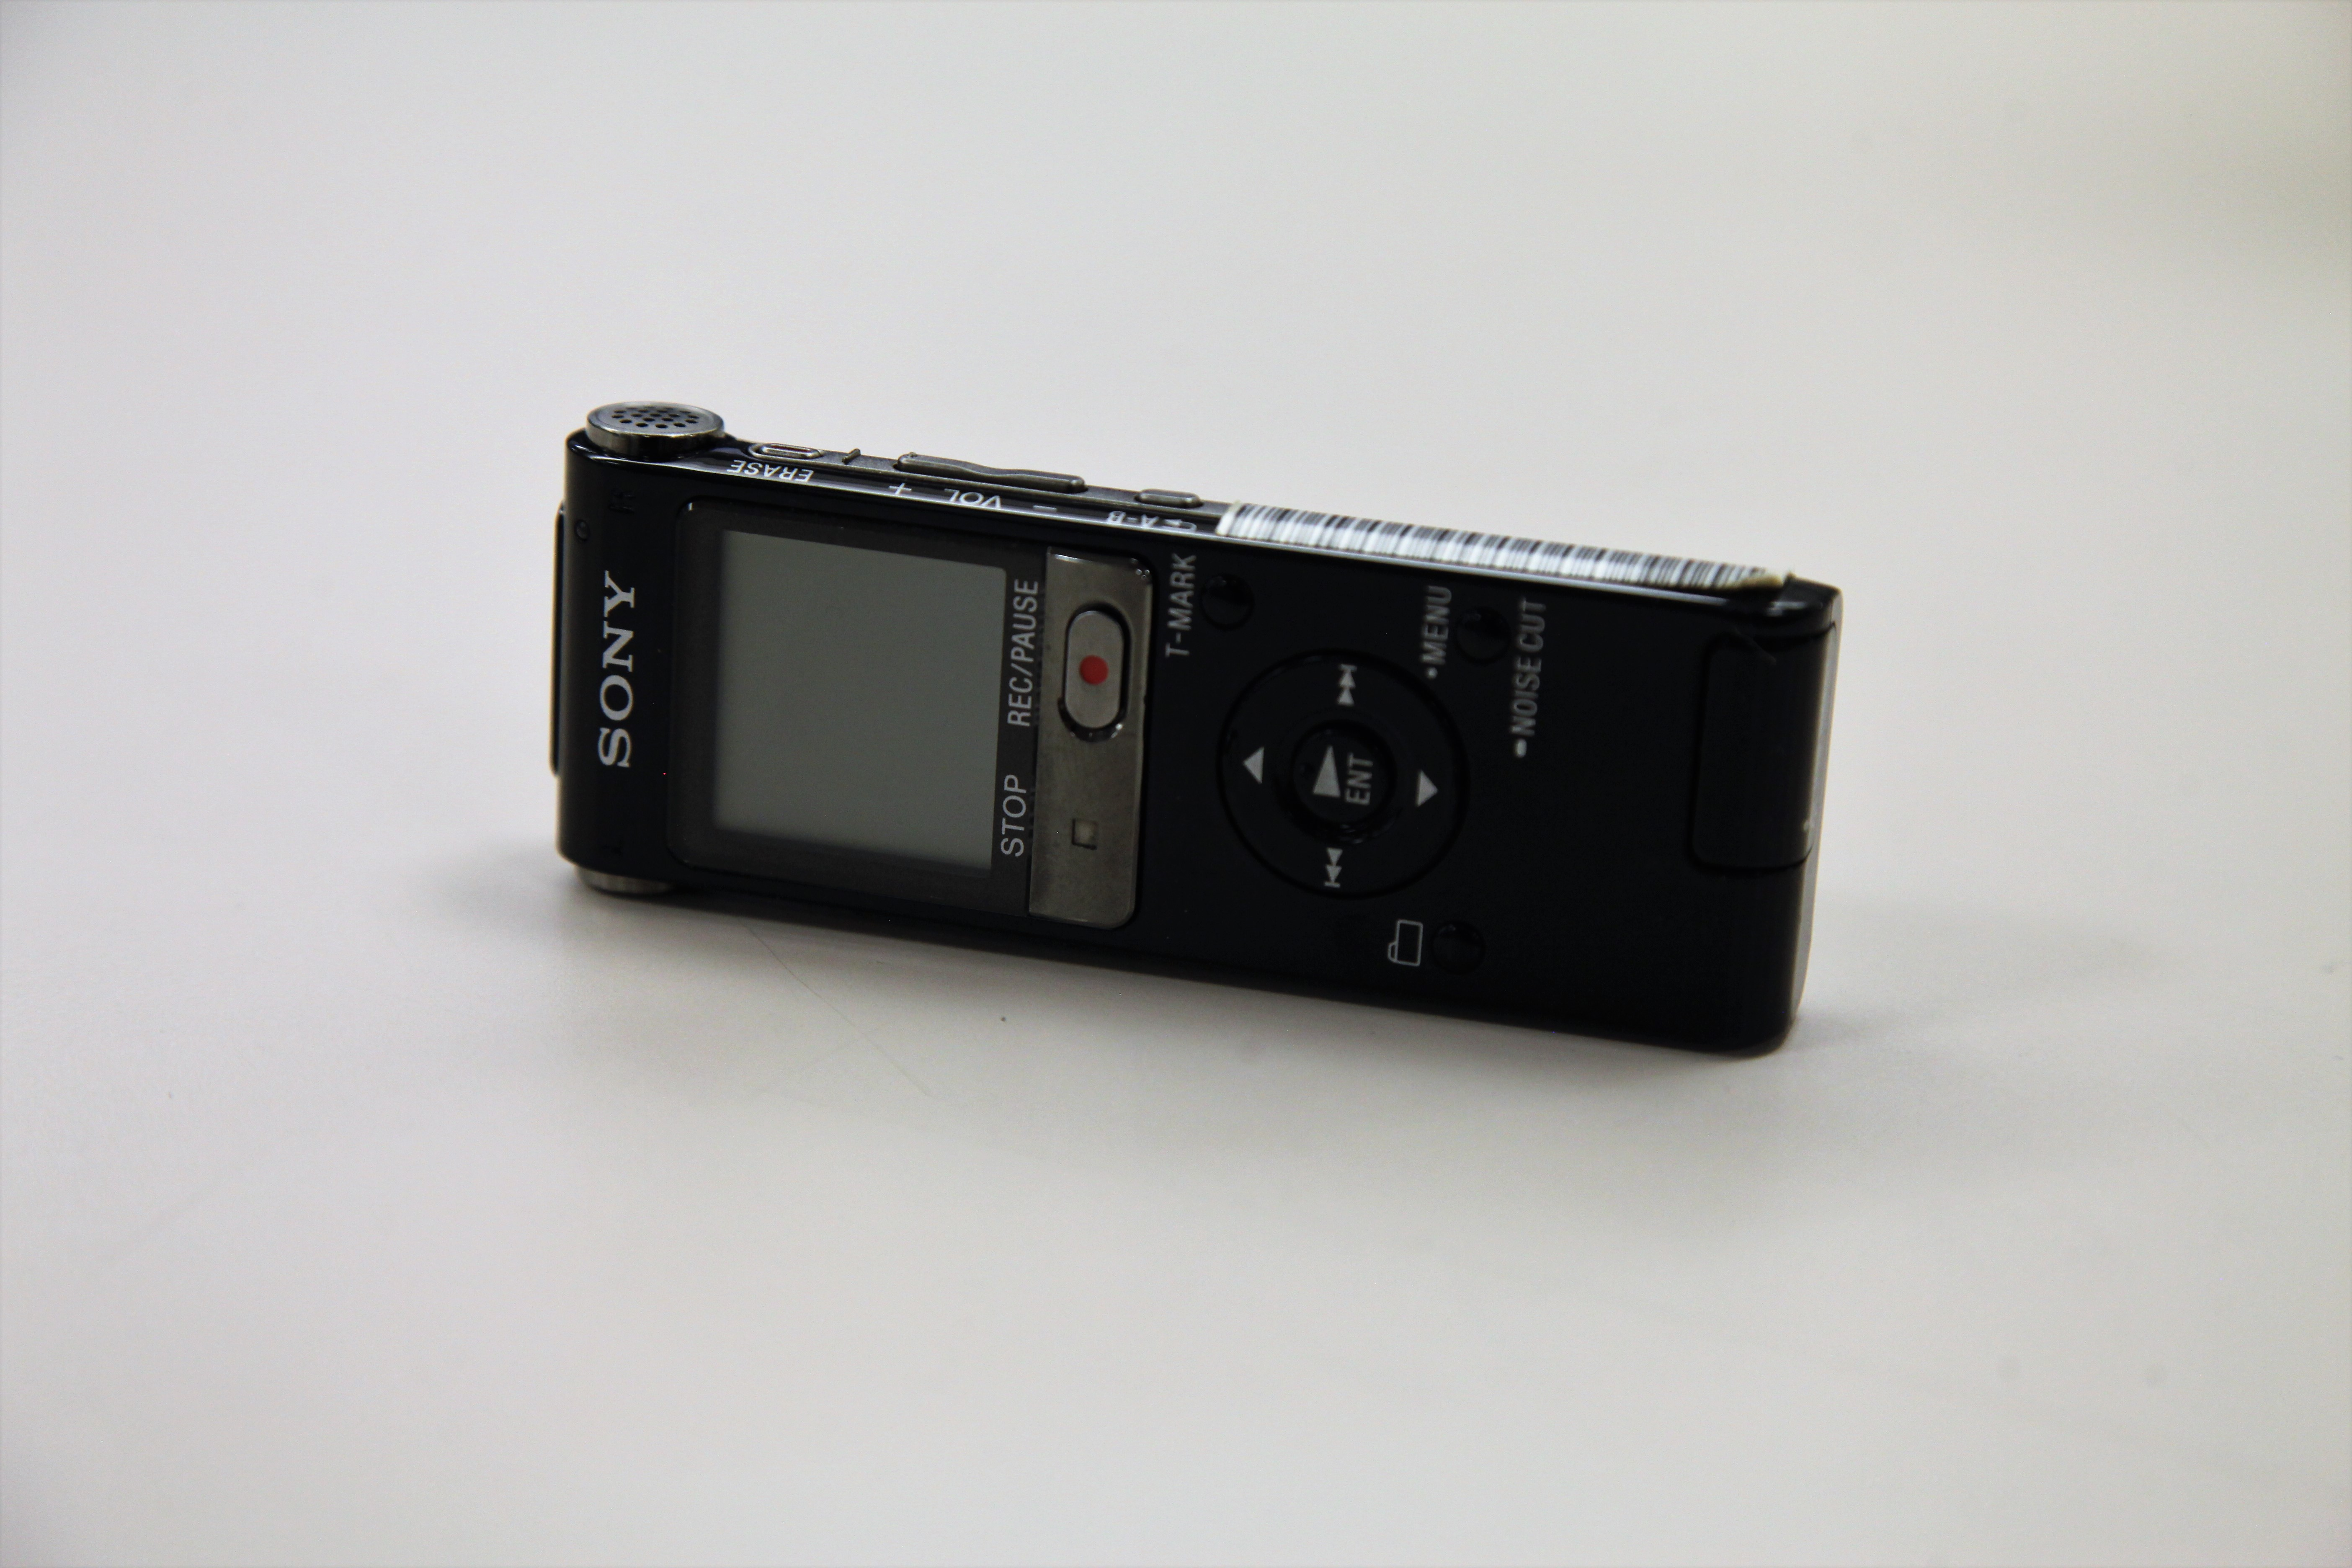 A Voice Recorder sitting on a counter